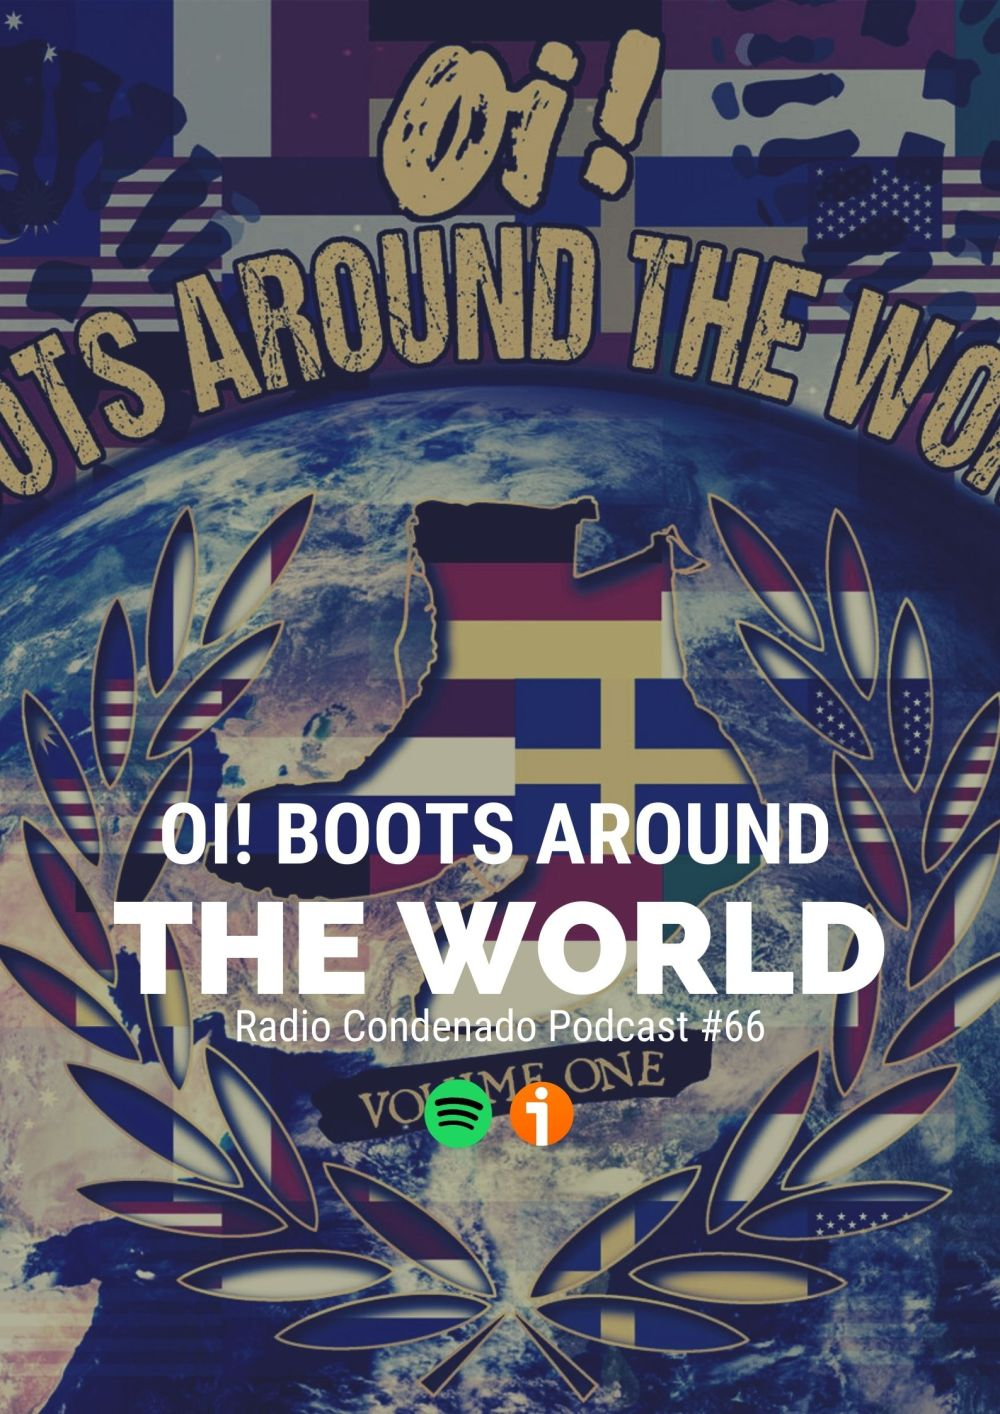 Radio Condenado Podcast #66 | Boots Around The World